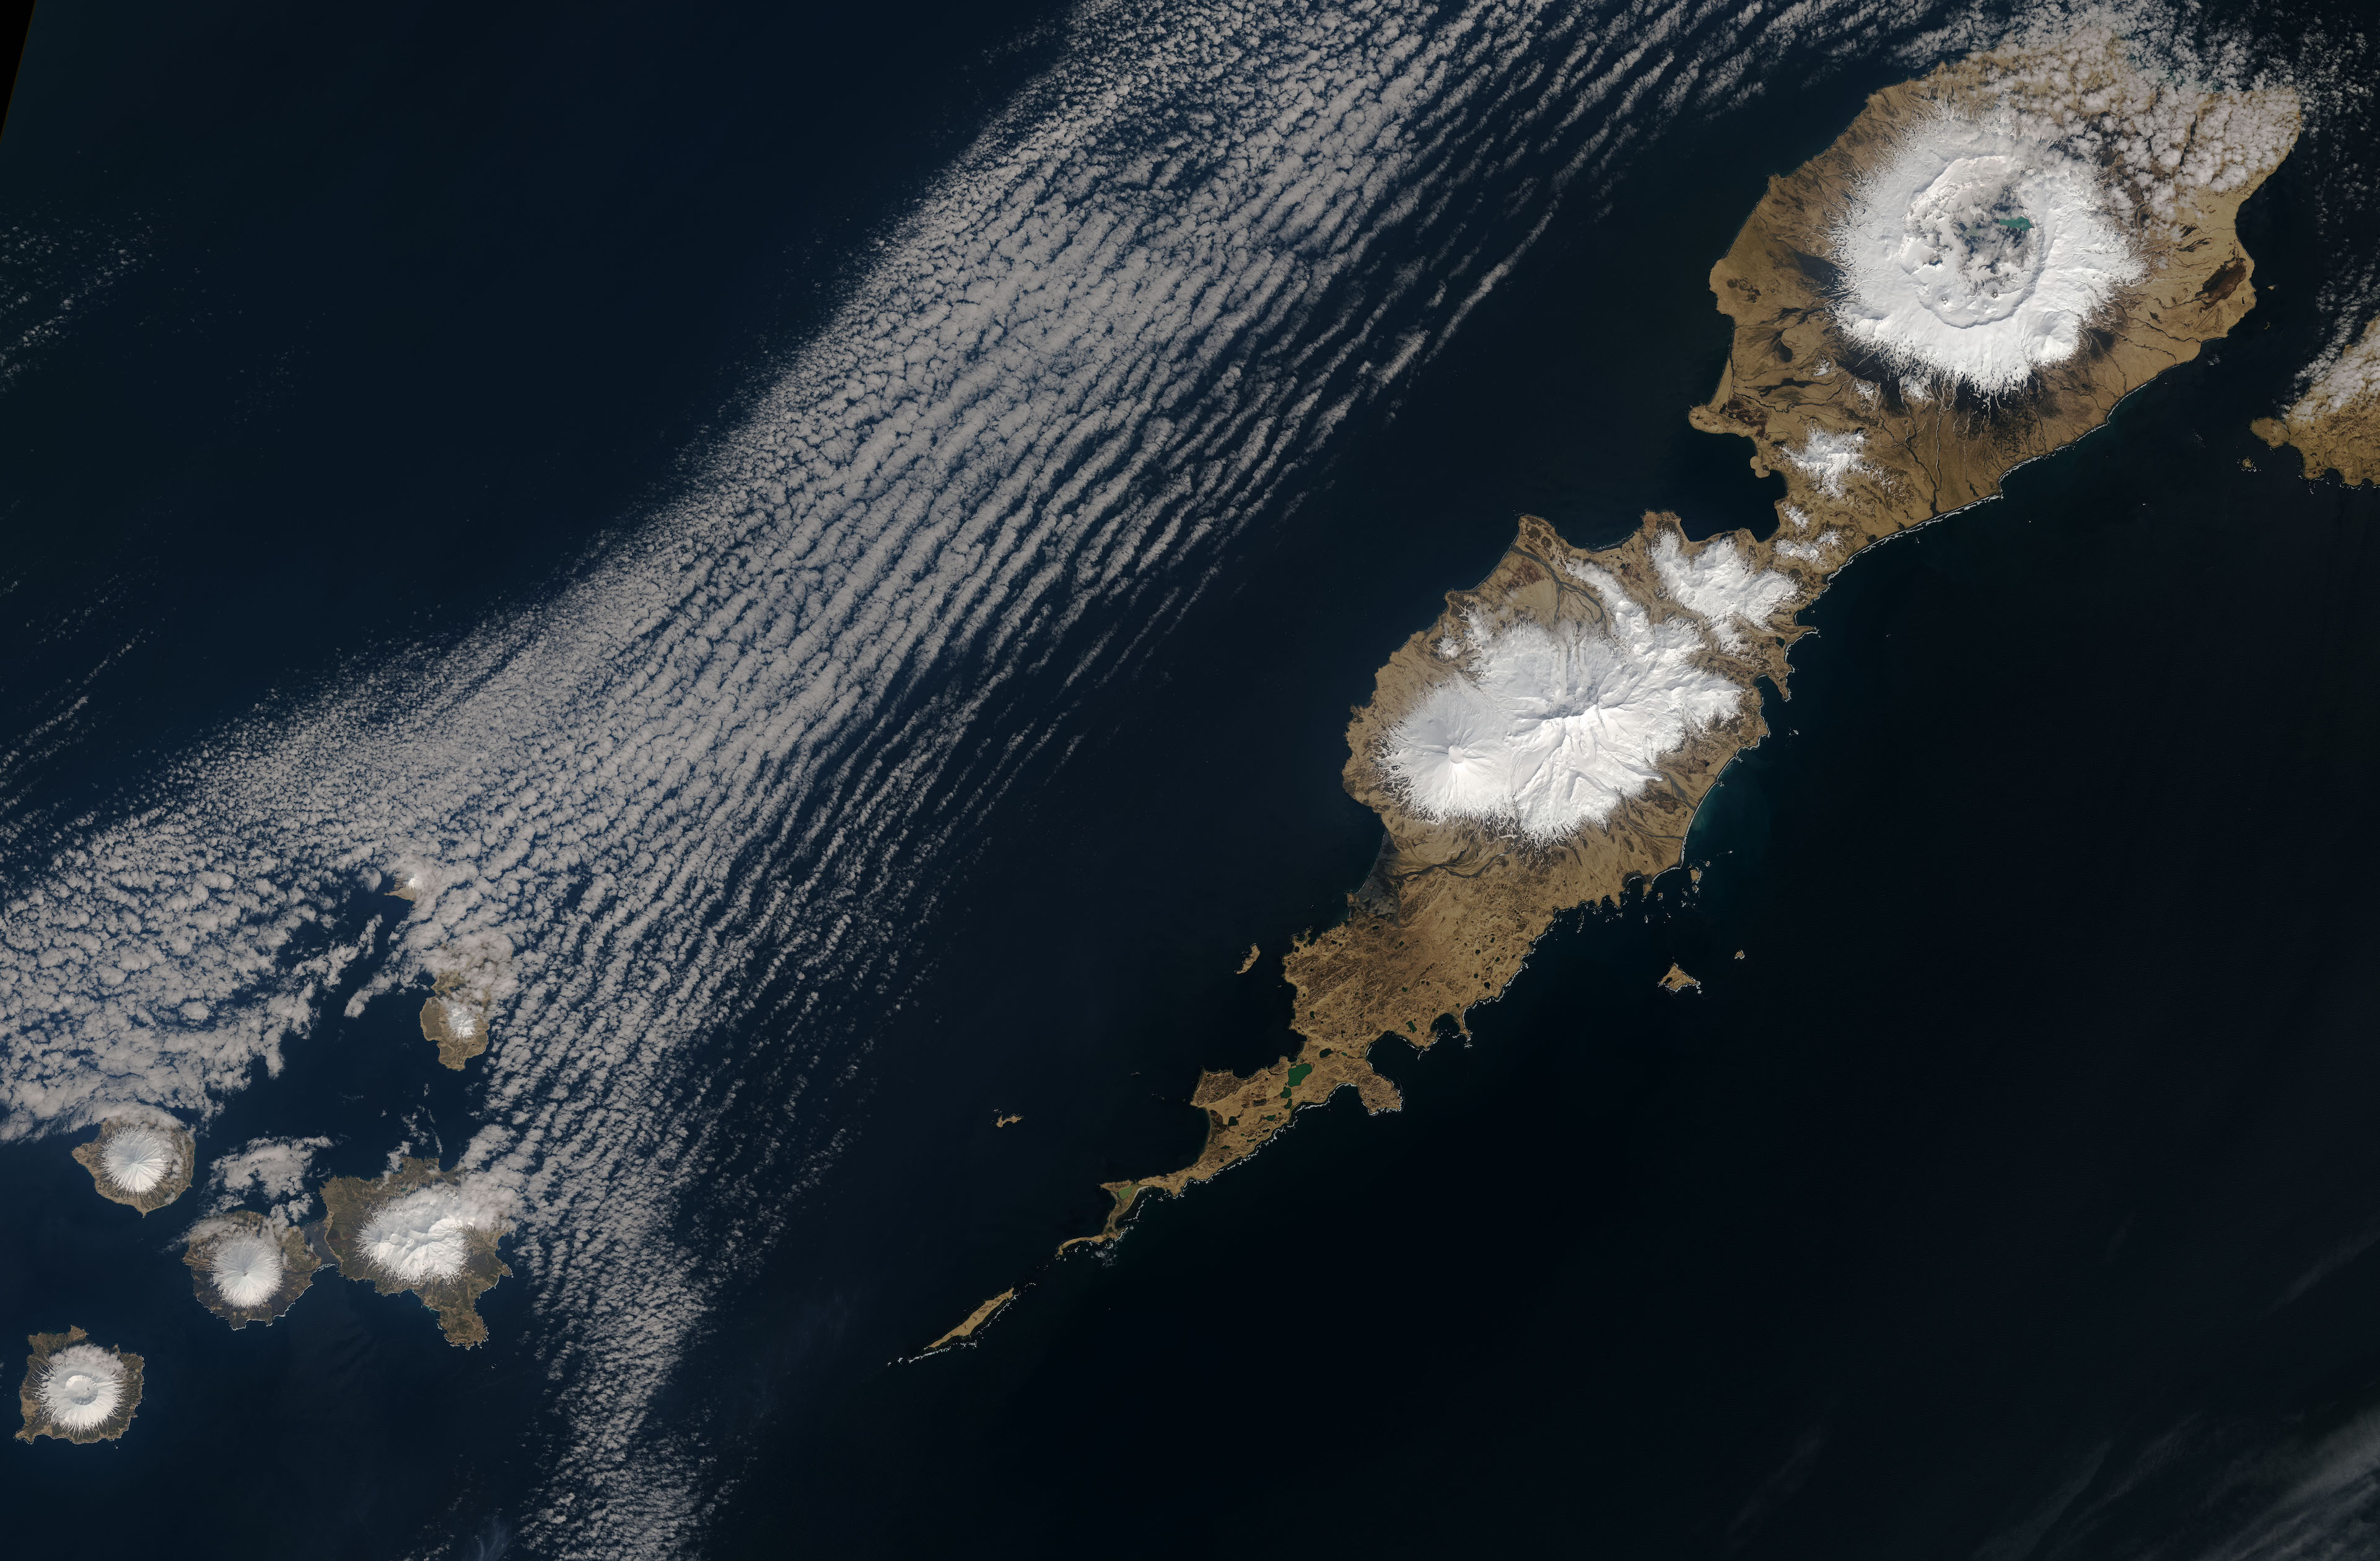 Today's Image of the Day comes thanks to the NASA Earth Observatory and features a look Umnak Island, the third largest in the Aleutian Island chain.